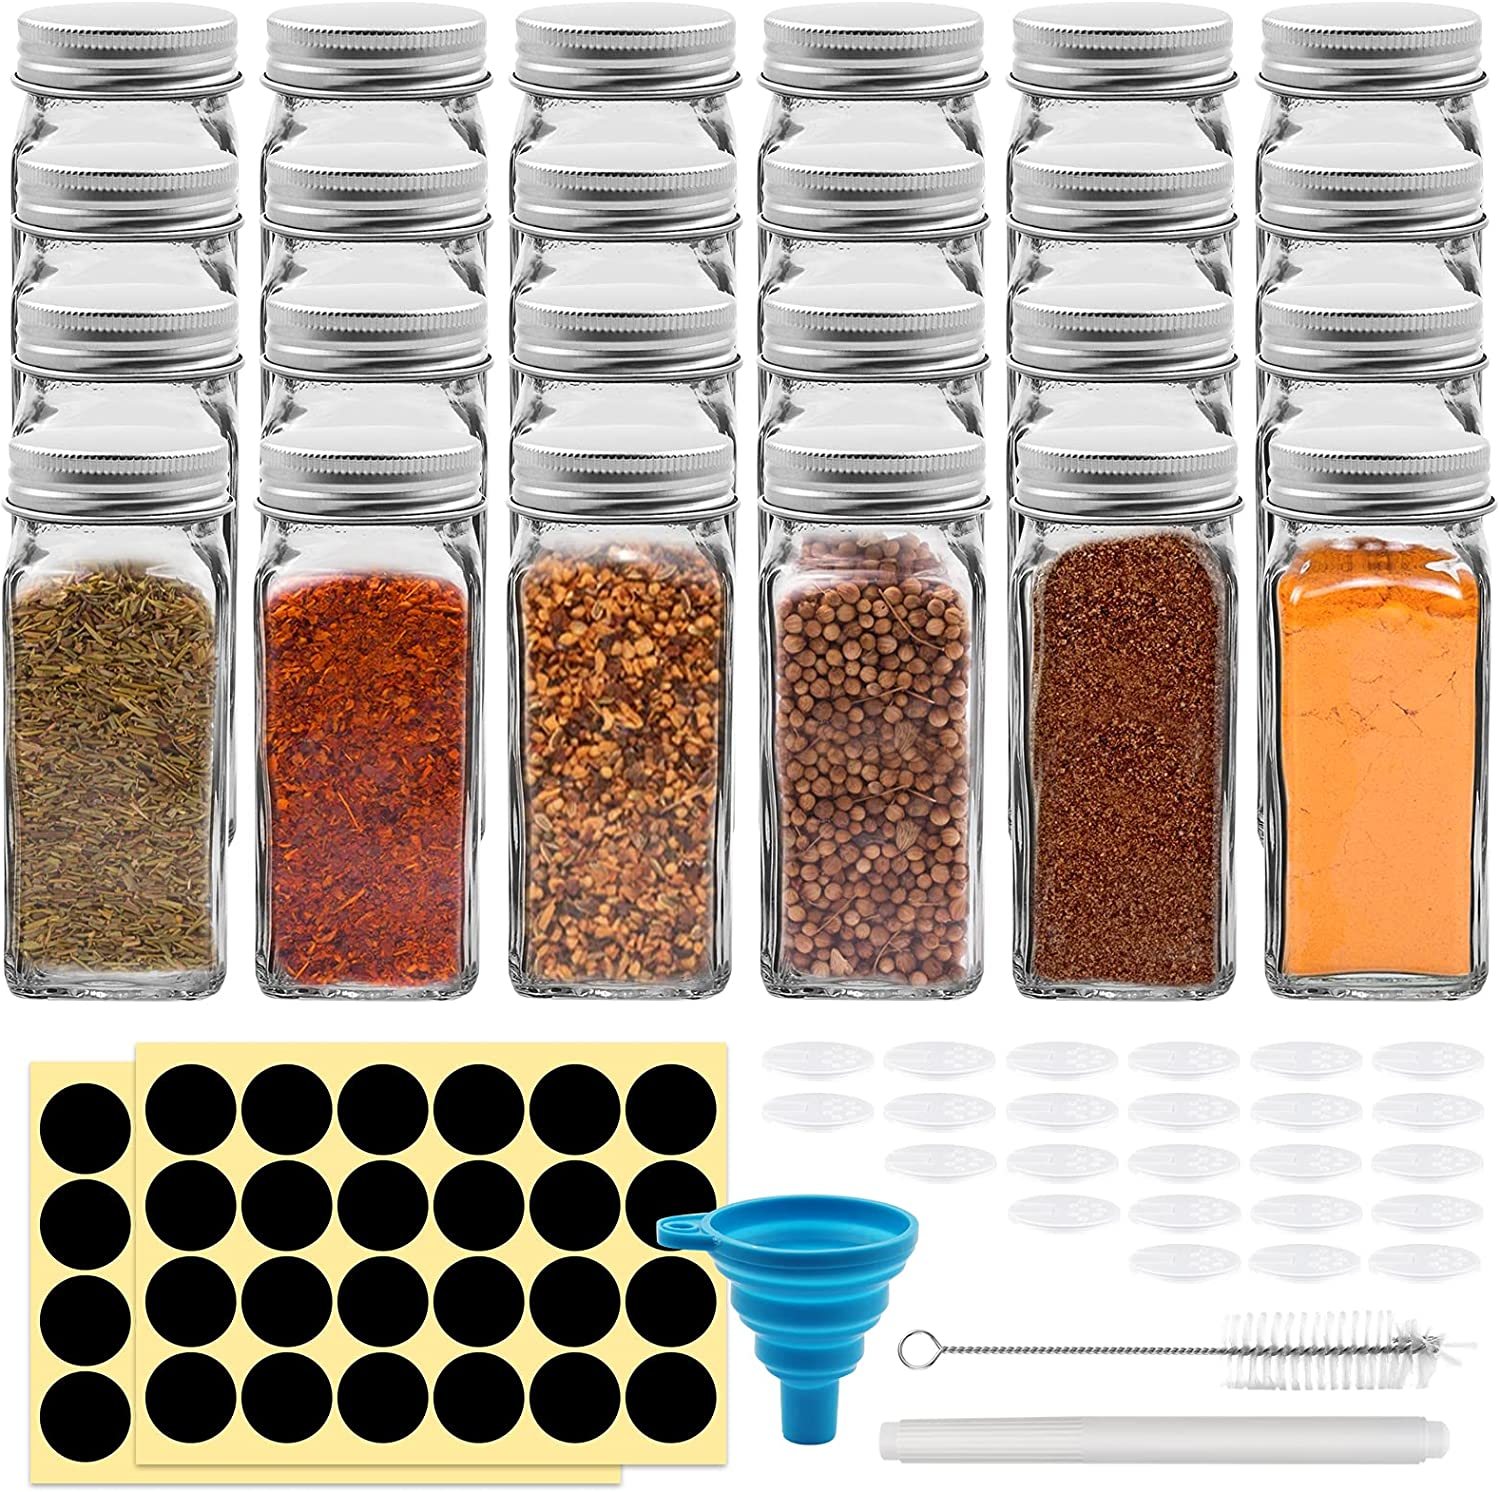 100% quality warranty 24 Pack 4oz Glass Spice Jars Ranking TOP10 Cookmaster Bottles Co Square